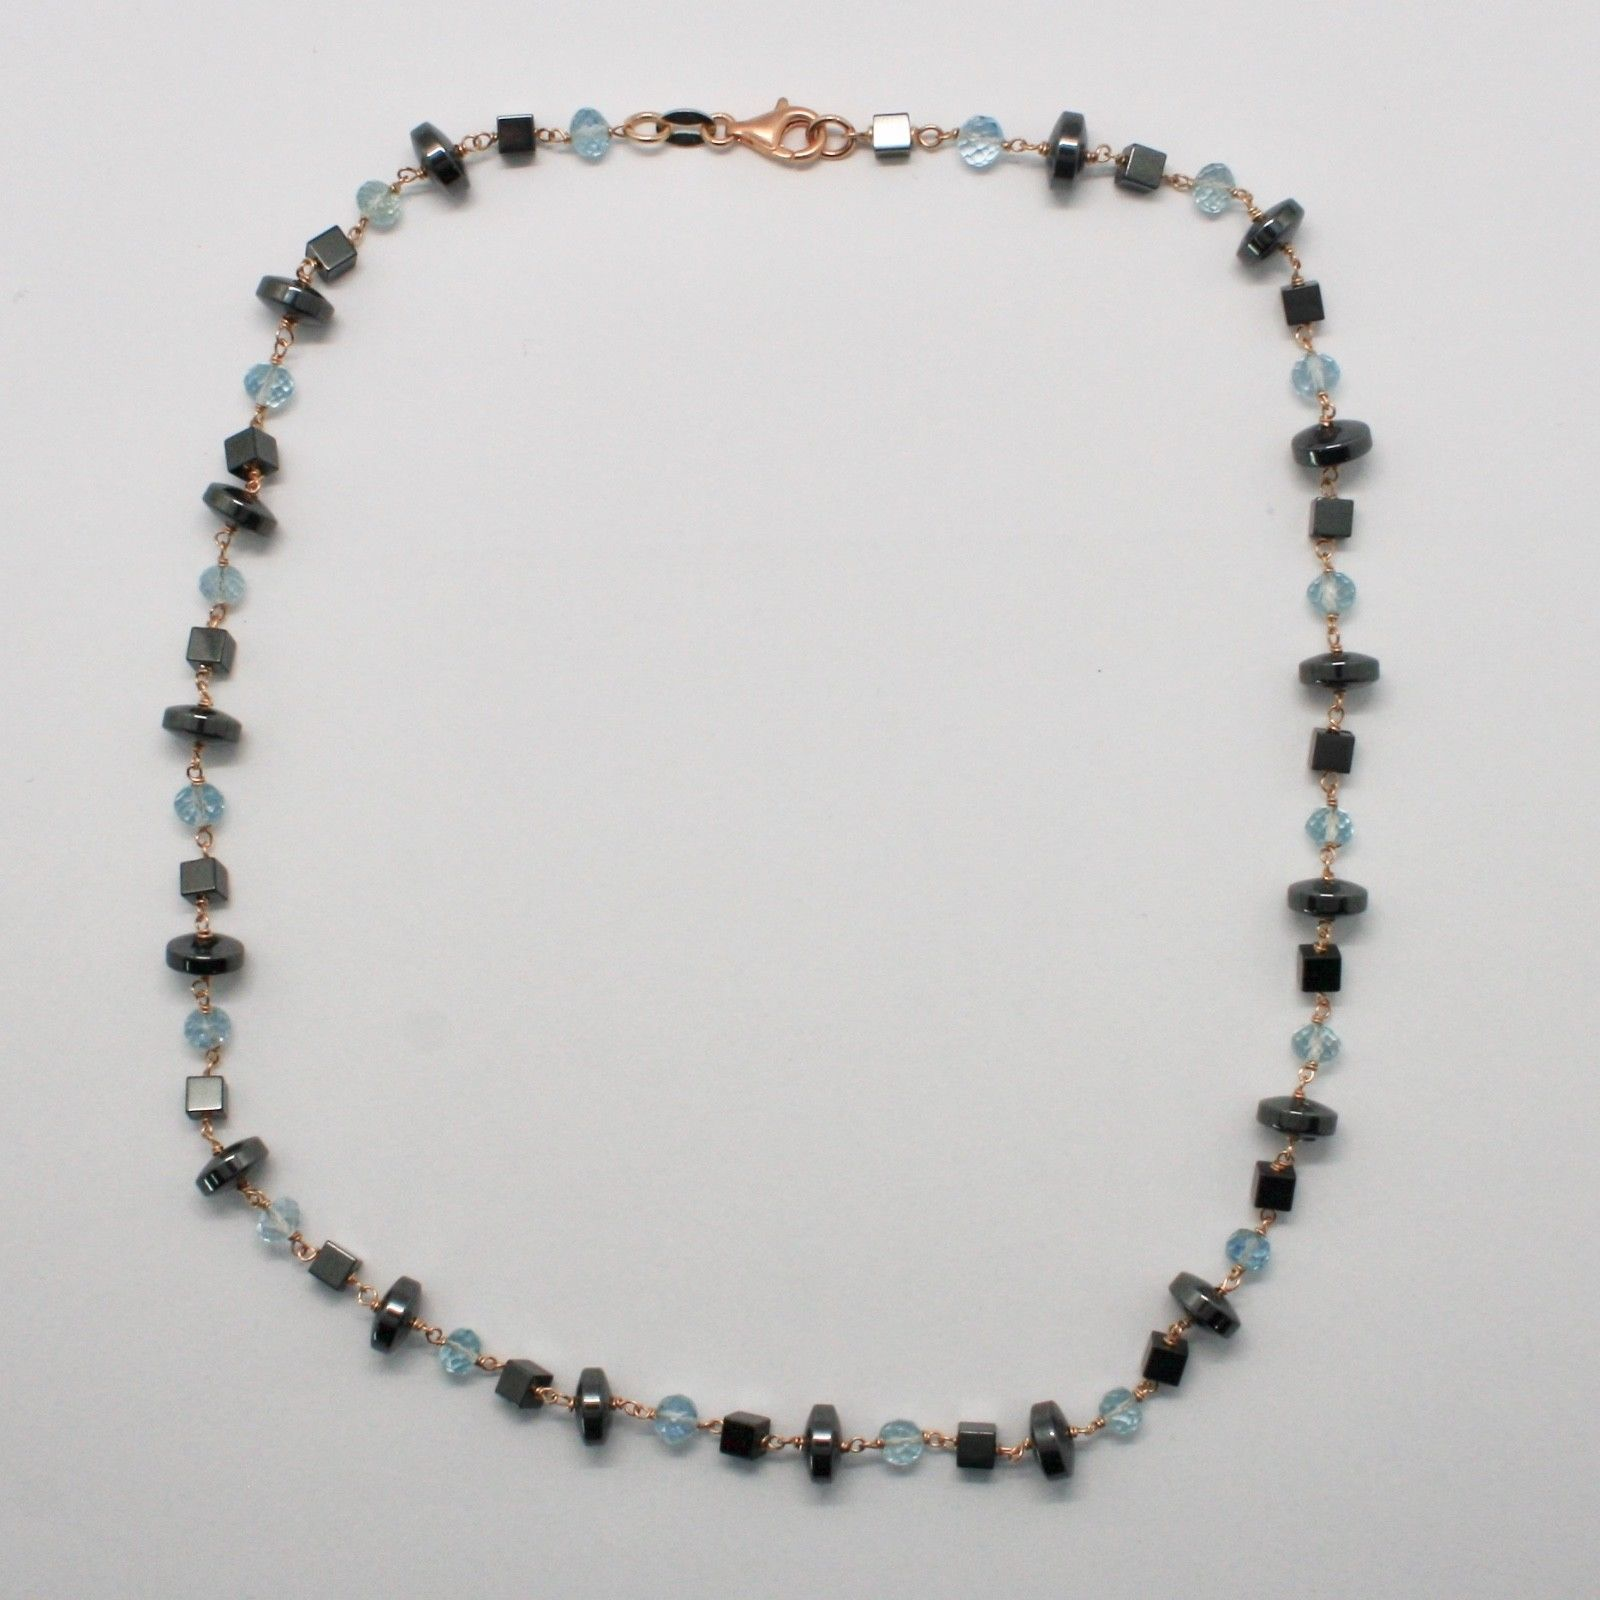 925 STERLING SILVER NECKLACE WITH AQUAMARINE AND HEMATITE MADE IN ITALY